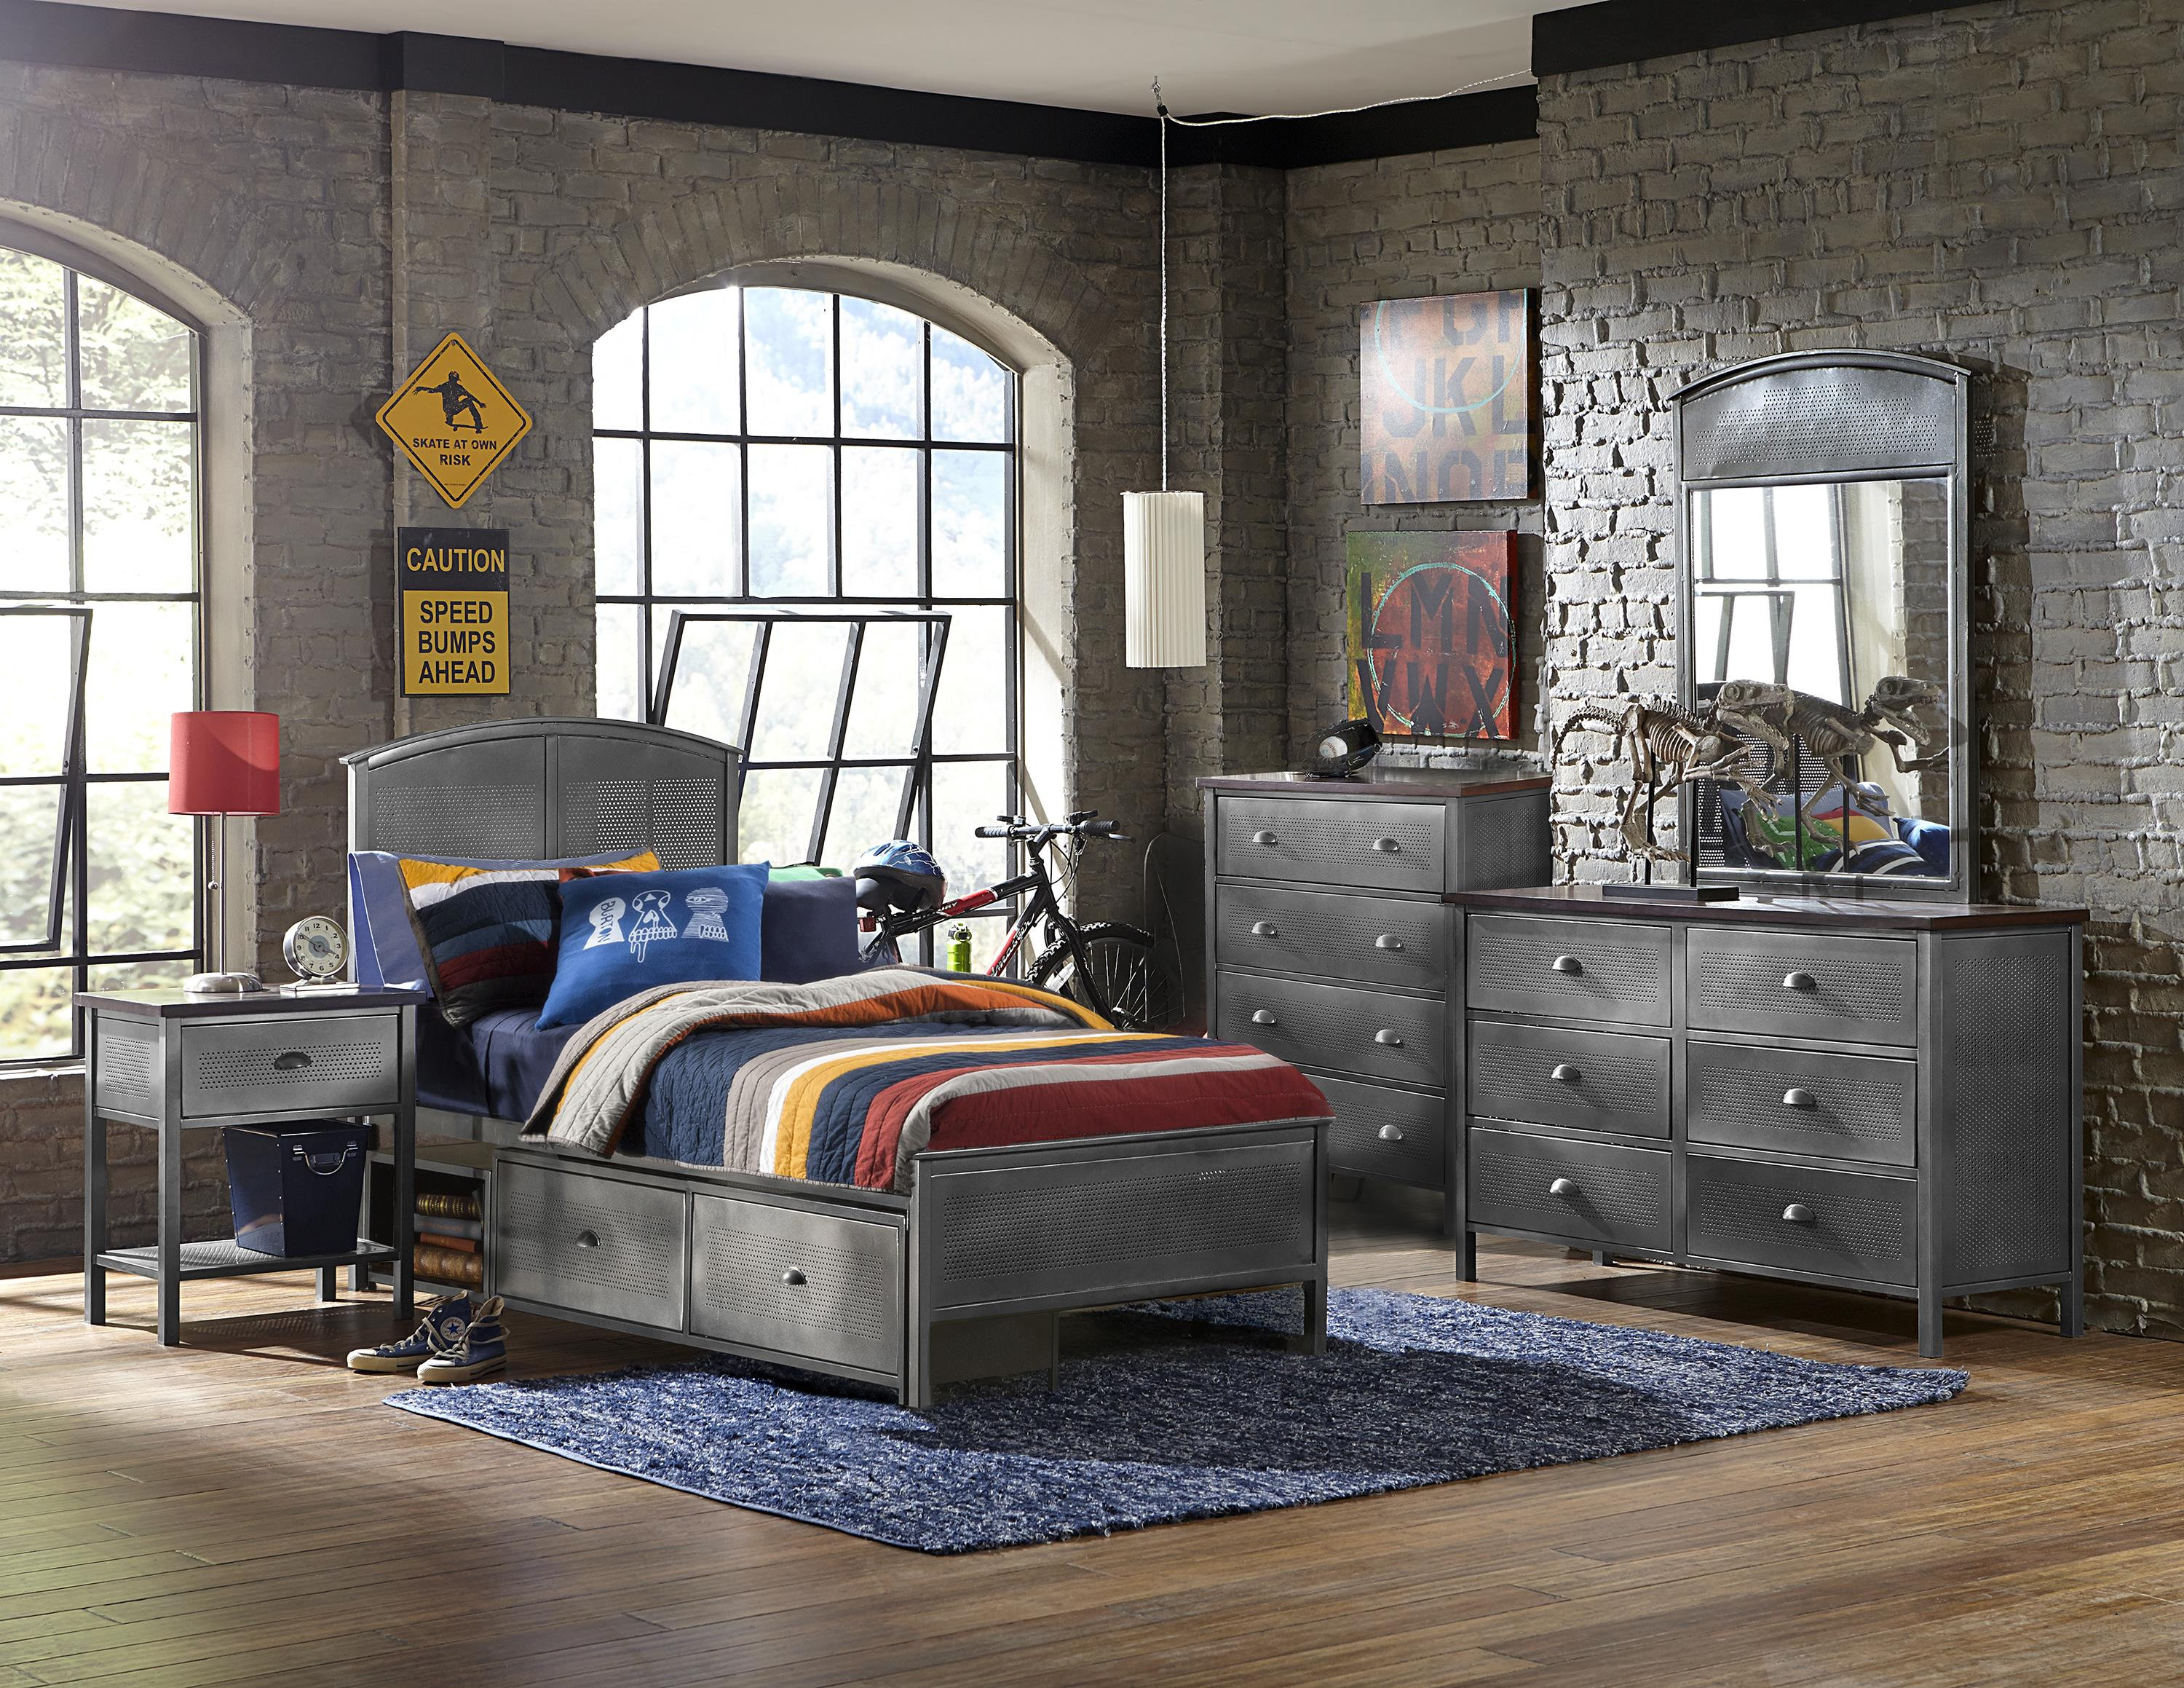 Urban Quarters Five Piece Set with Full Storage Bed at Ruby Gordon Home